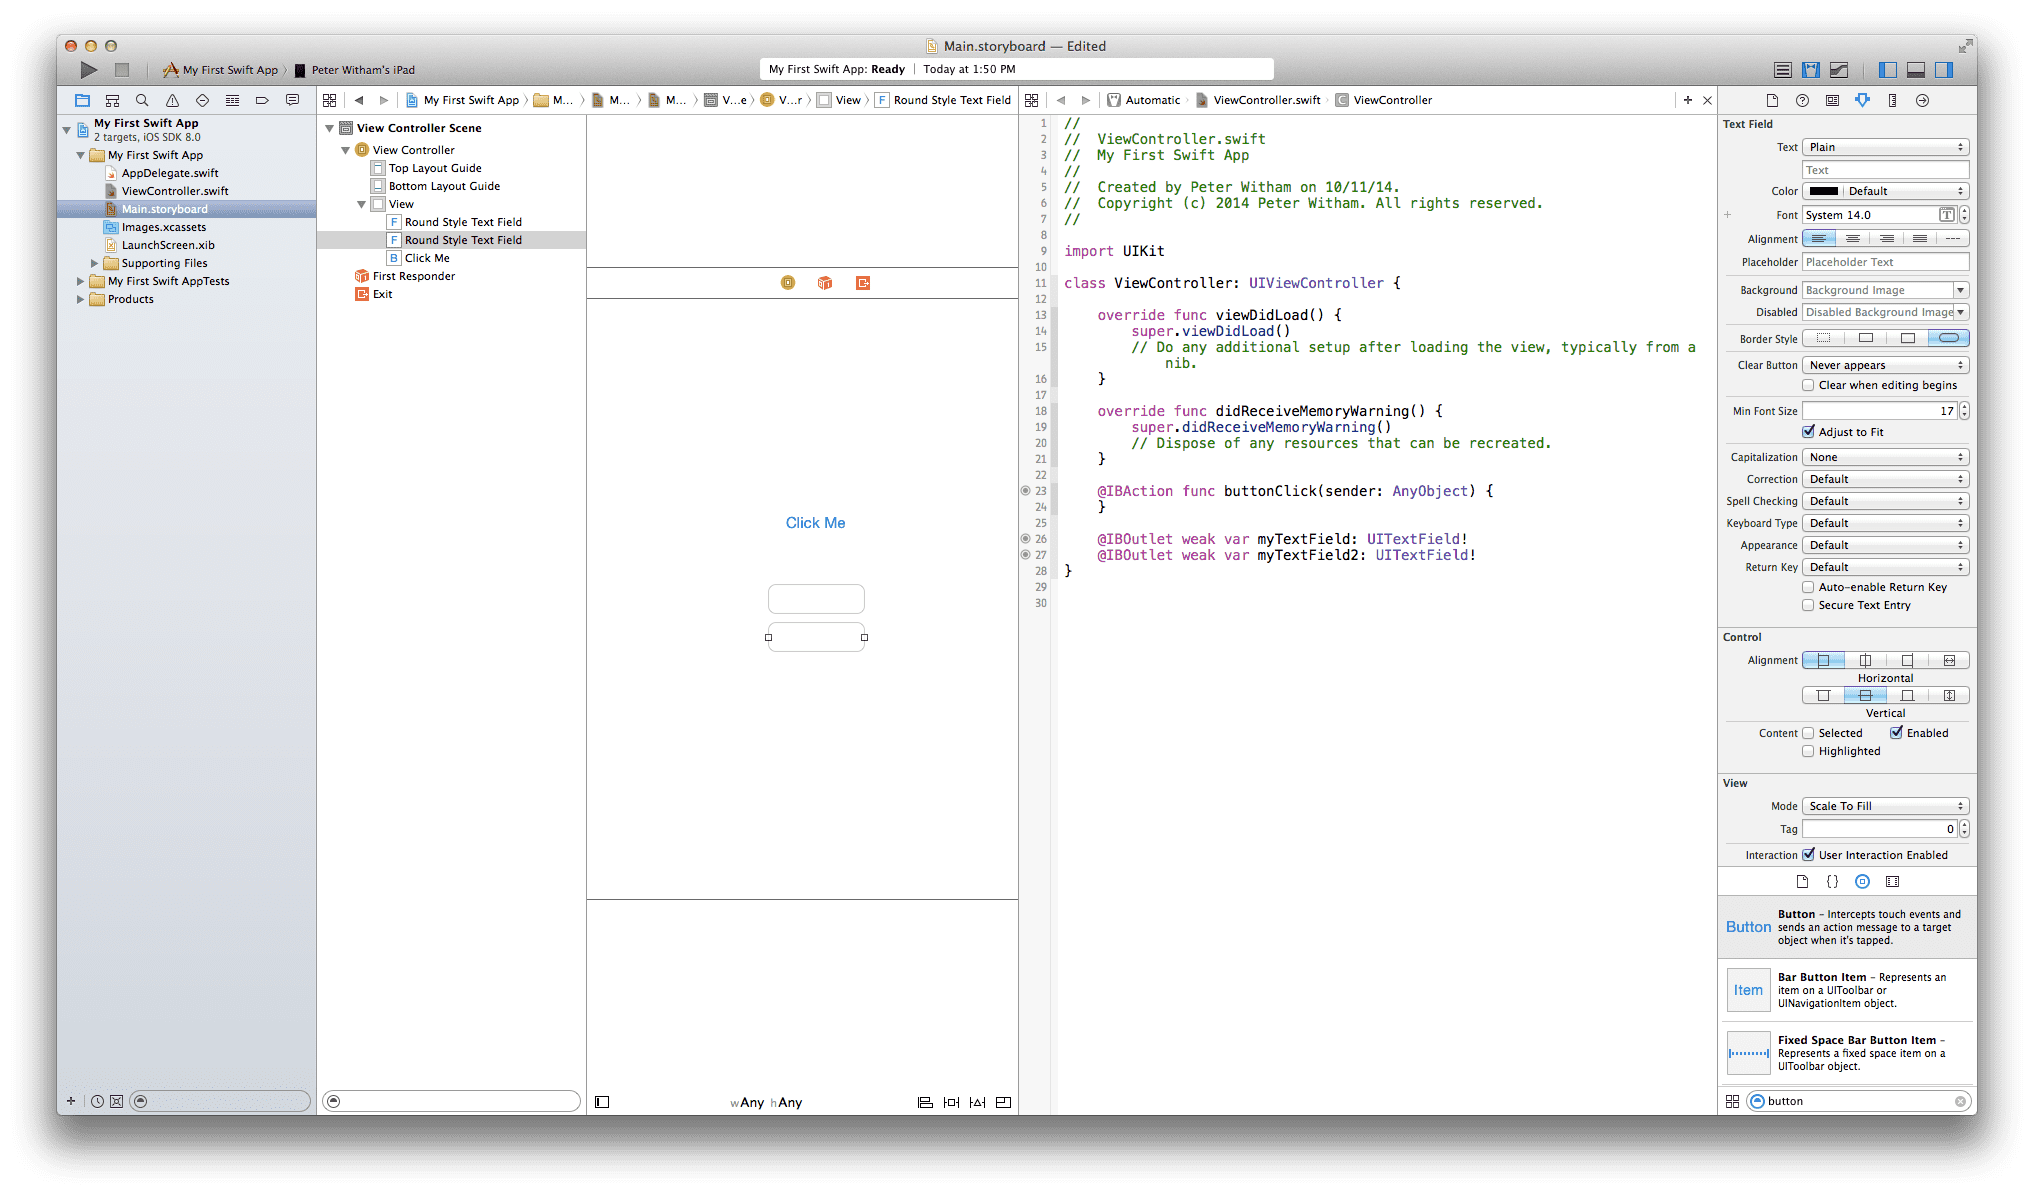 Xcode 6 - Storyboard with button and two textfields